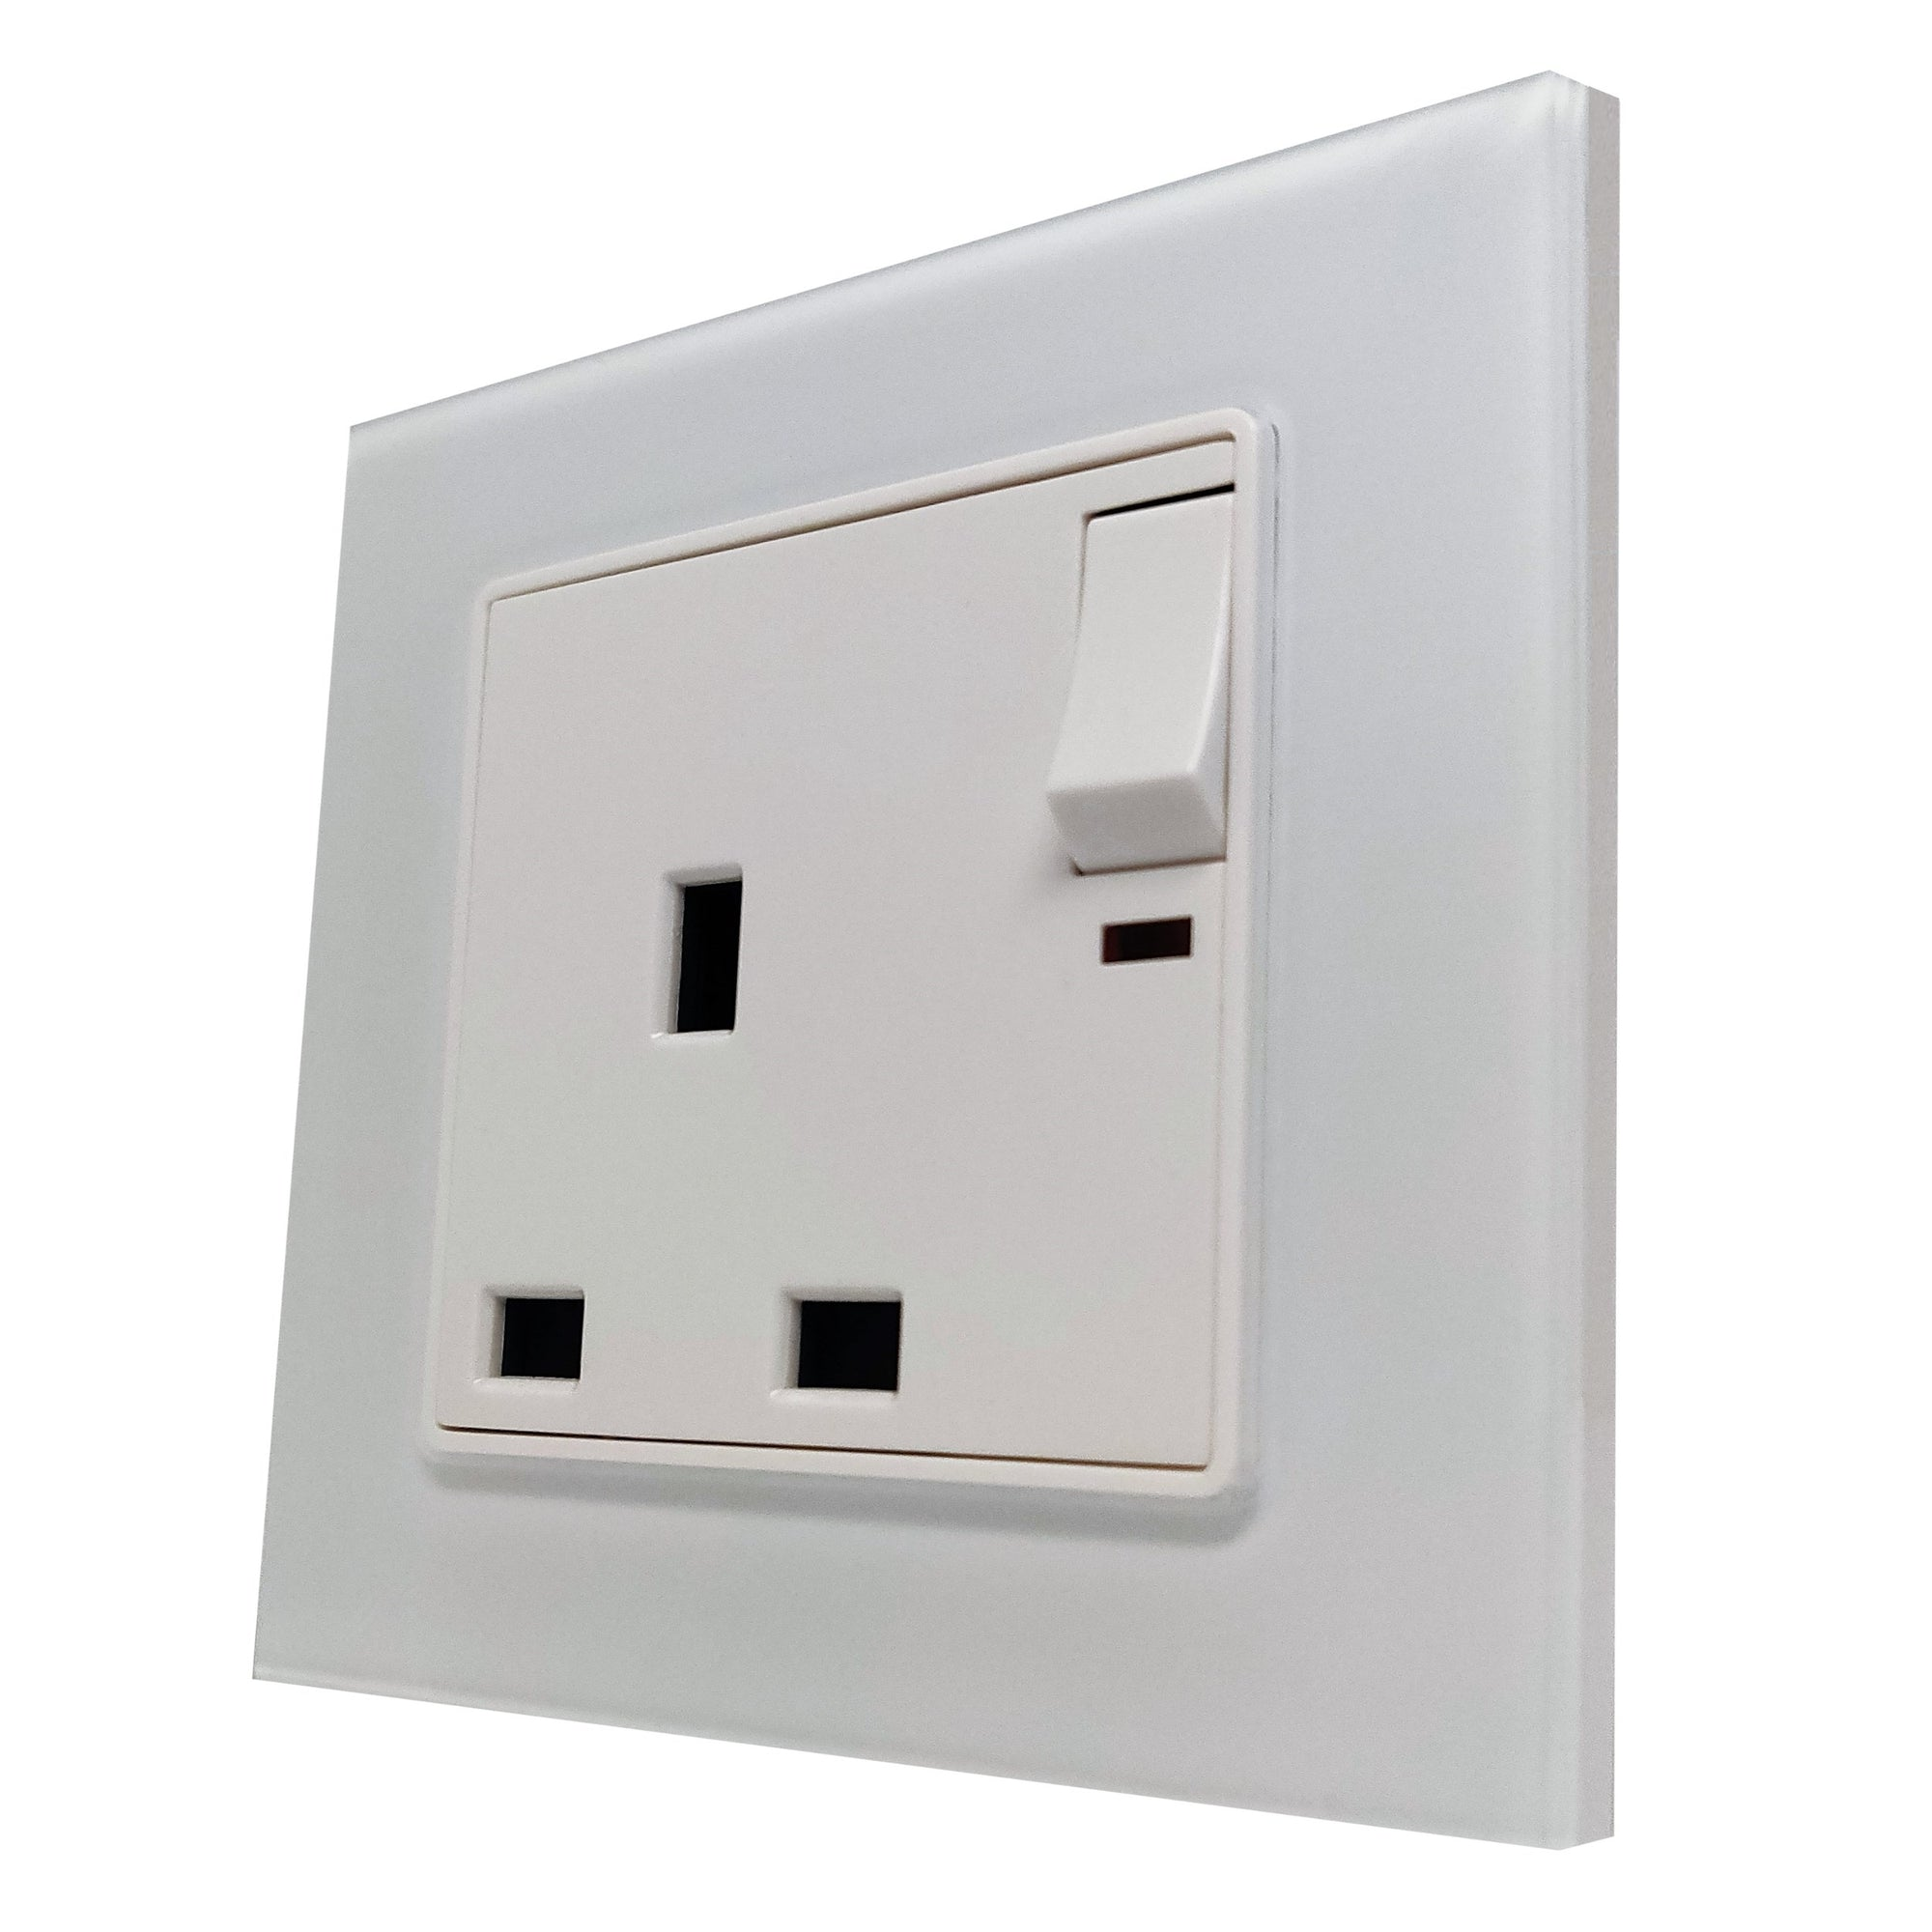 Single UK 13A 3-Pin AC Wall Power Socket in White Glass Frame & White Centre